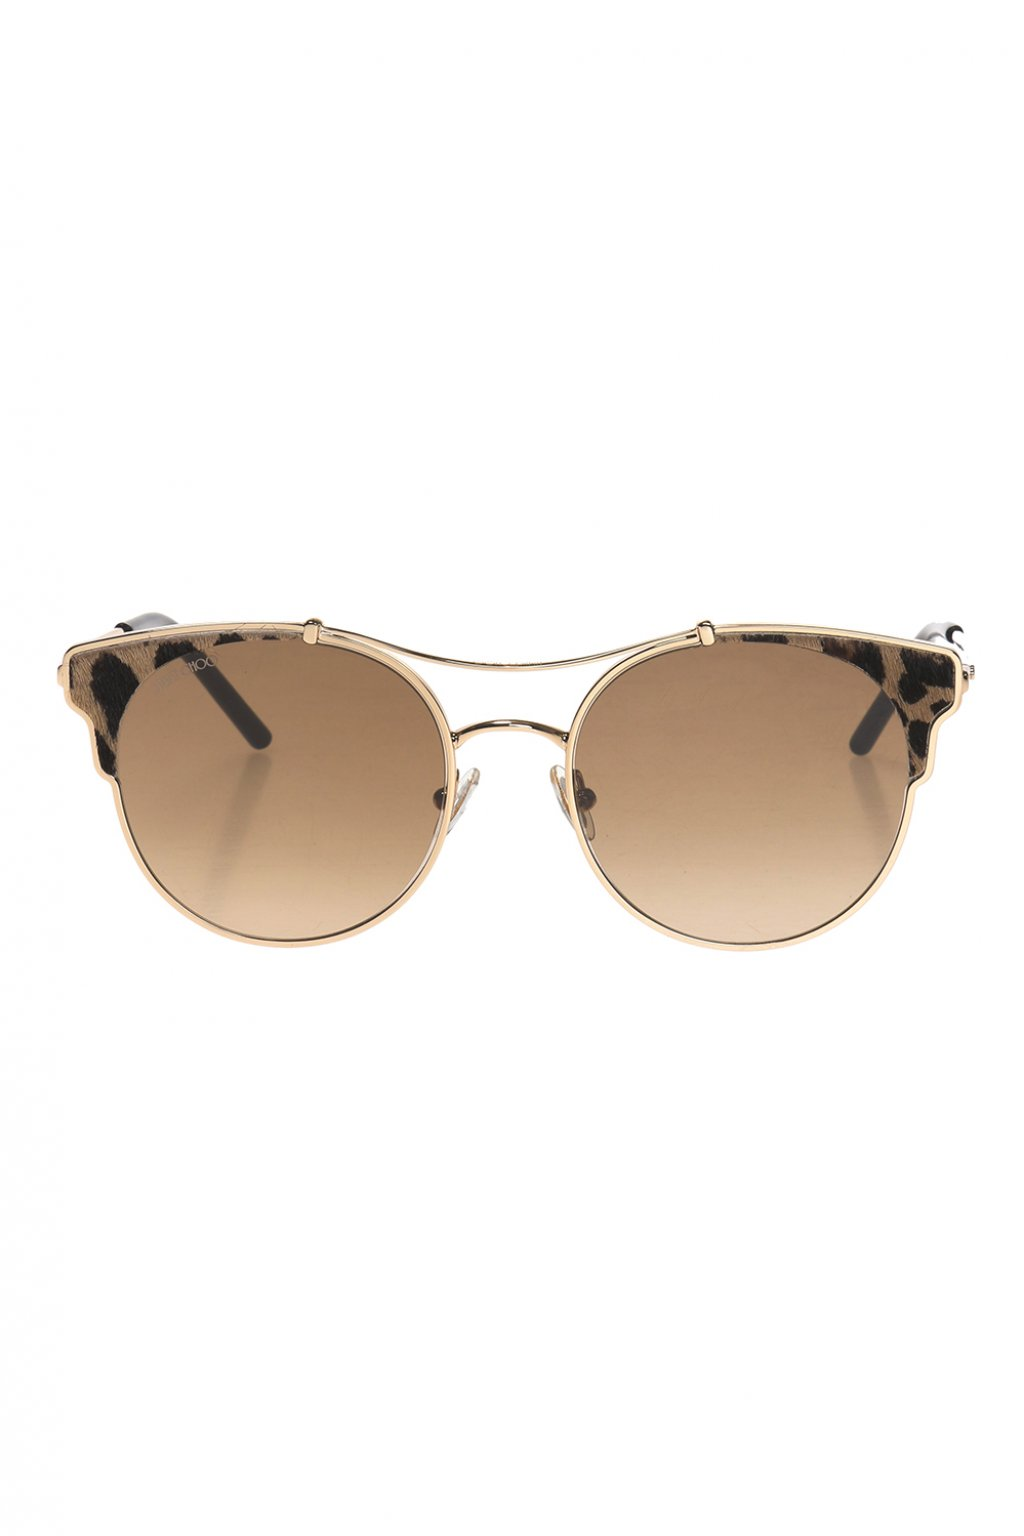 Jimmy Choo 'Lue' sunglasses